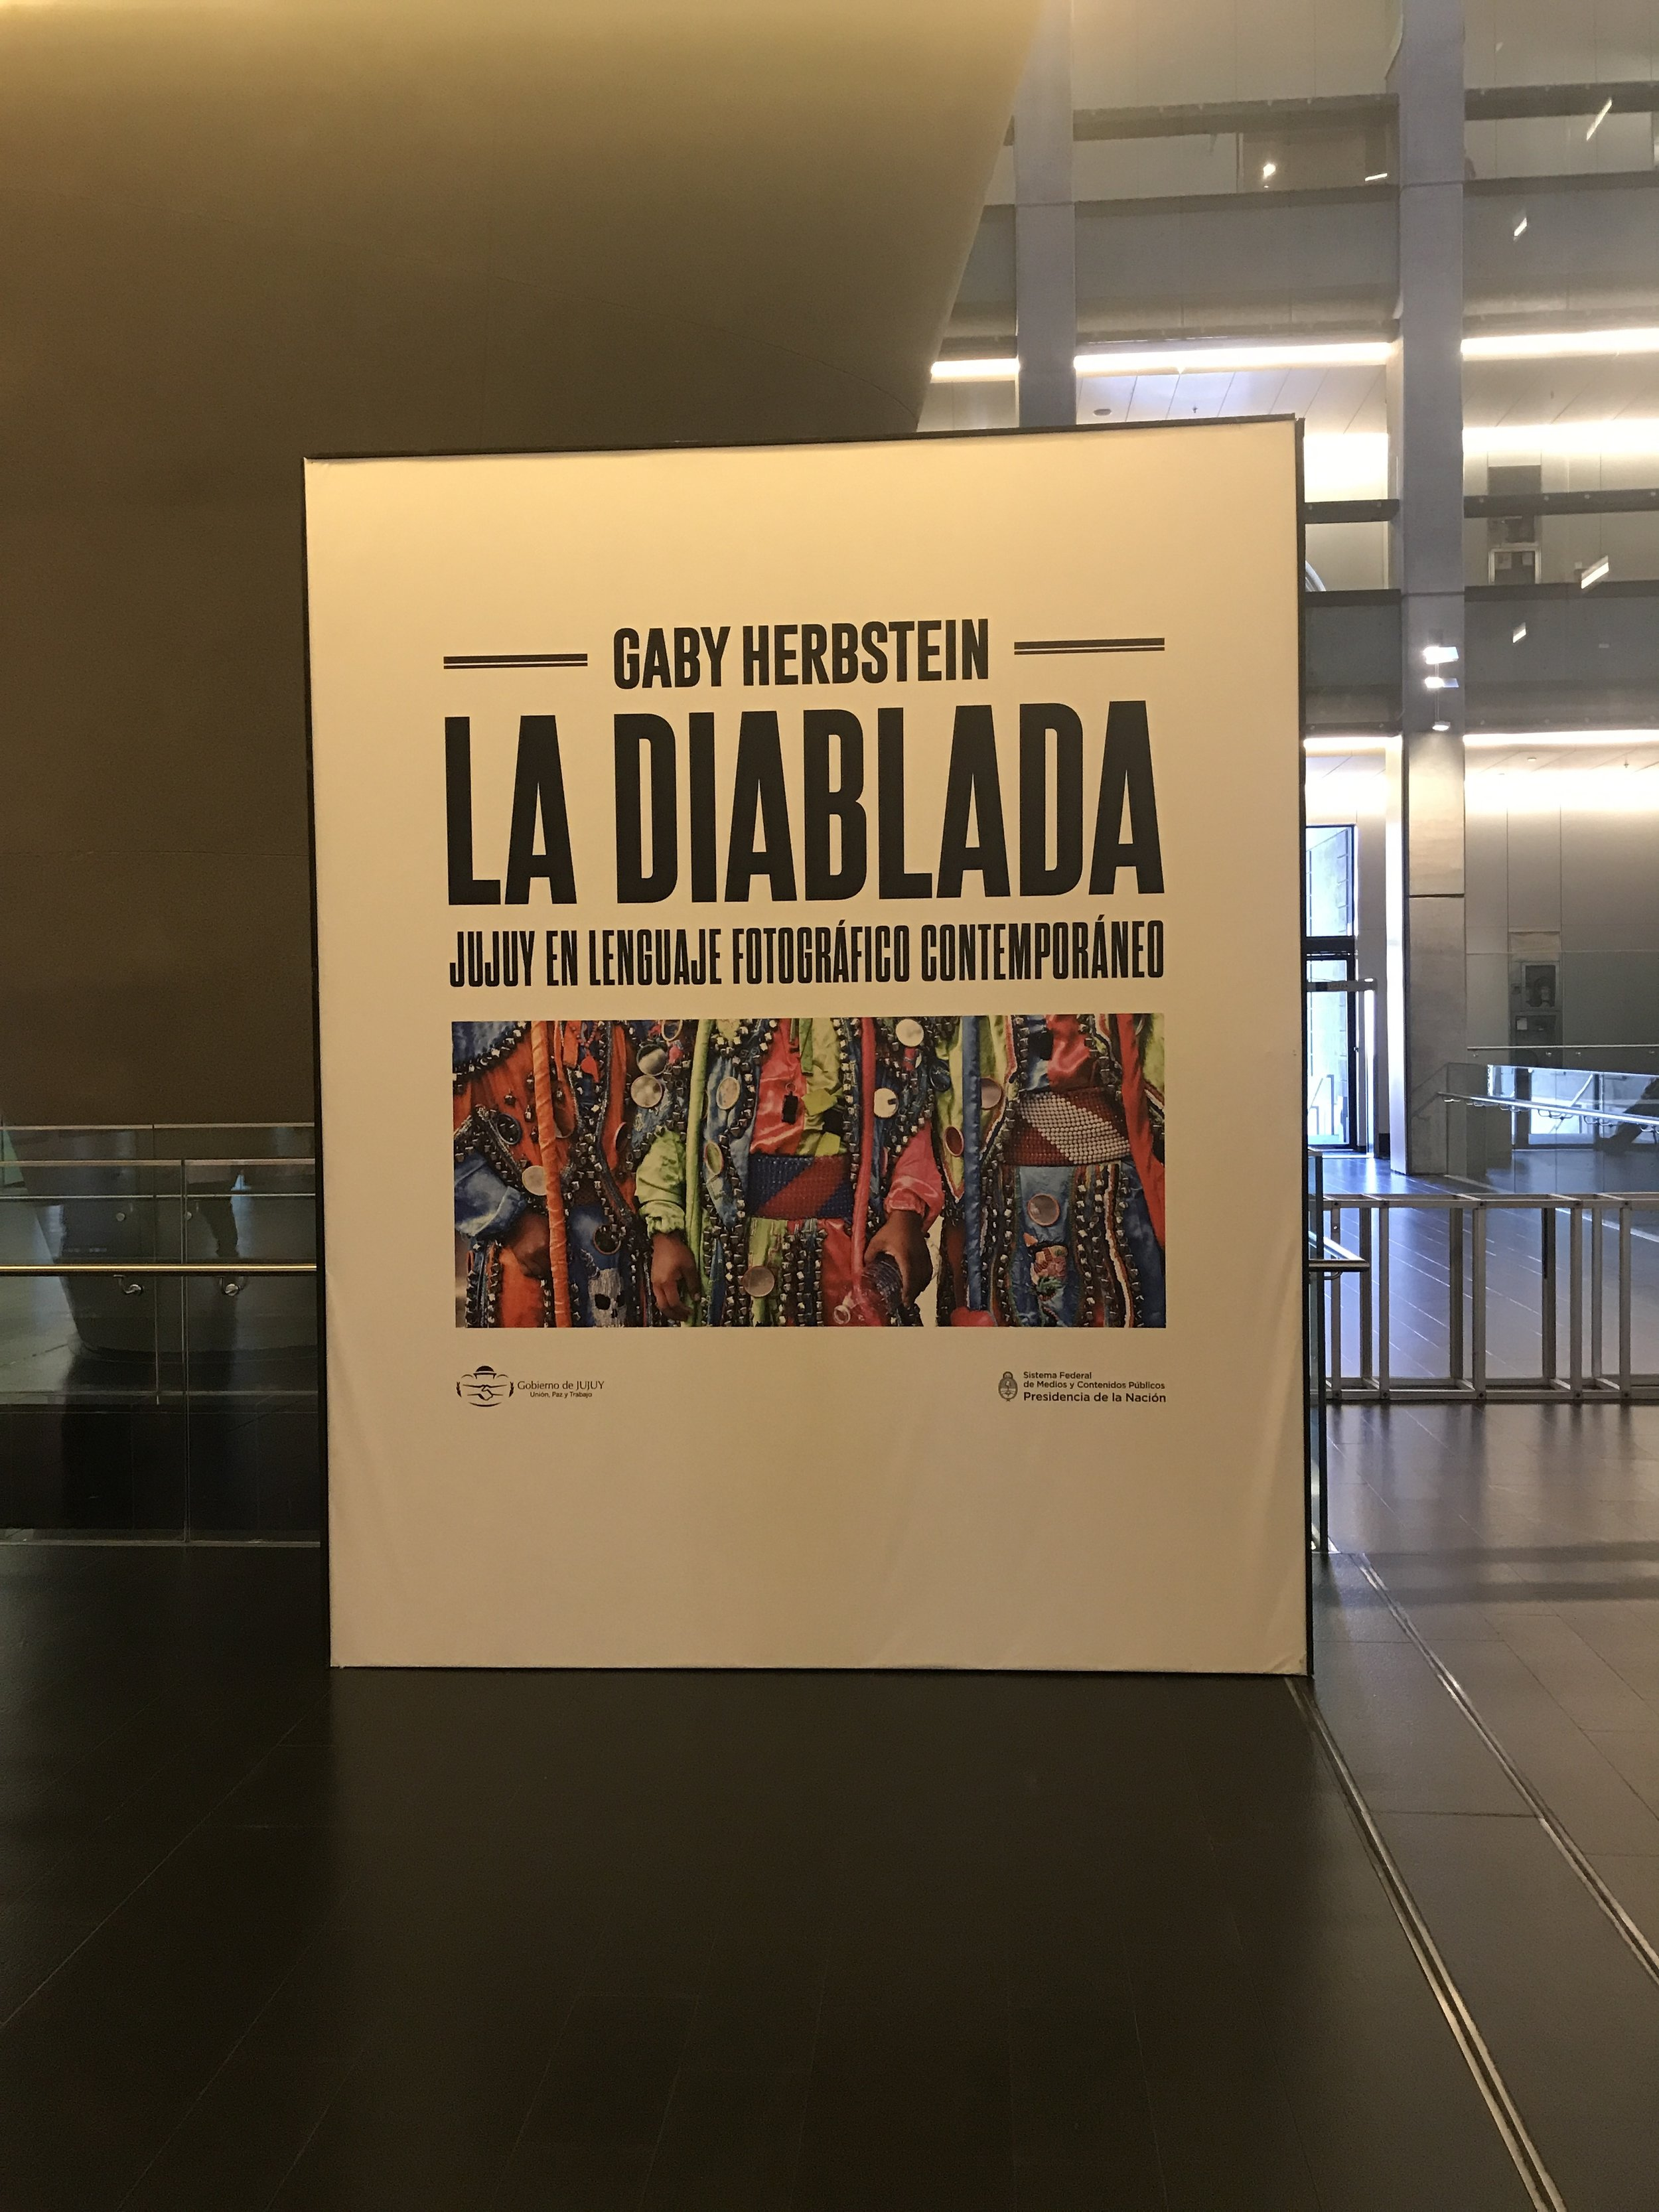 We saw this sick photography exhibit shot in the north part of Argentina where the JuJuy culture lives. There are a ton of stairs here if you really want to test your tired legs ! Or take the escalator, whatever!